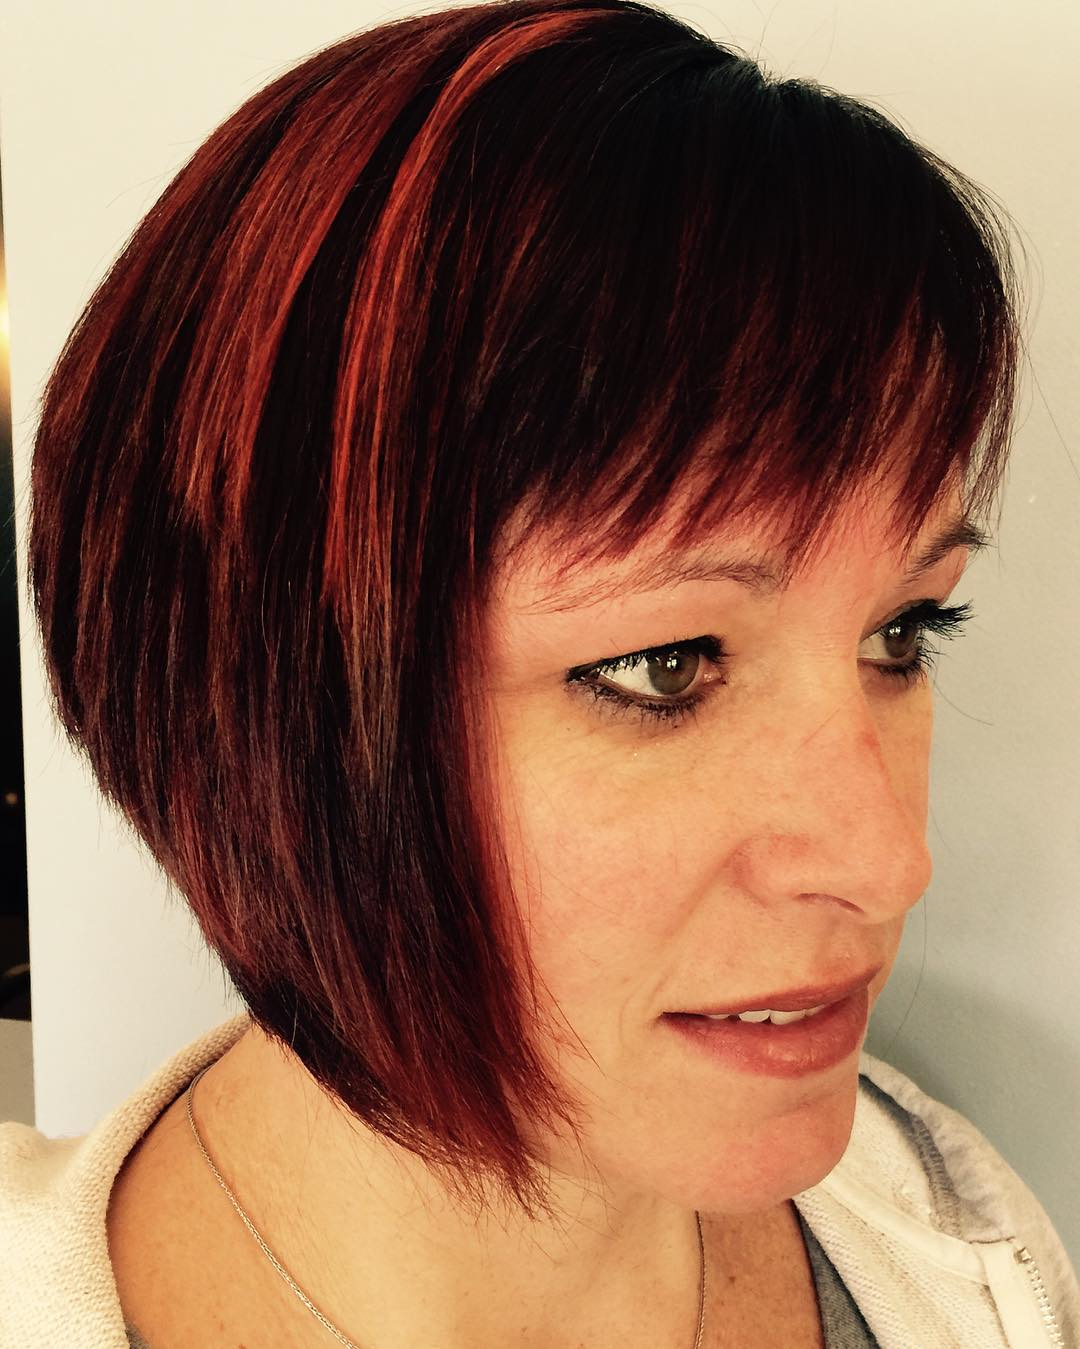 Rock out Red Haircut for Women